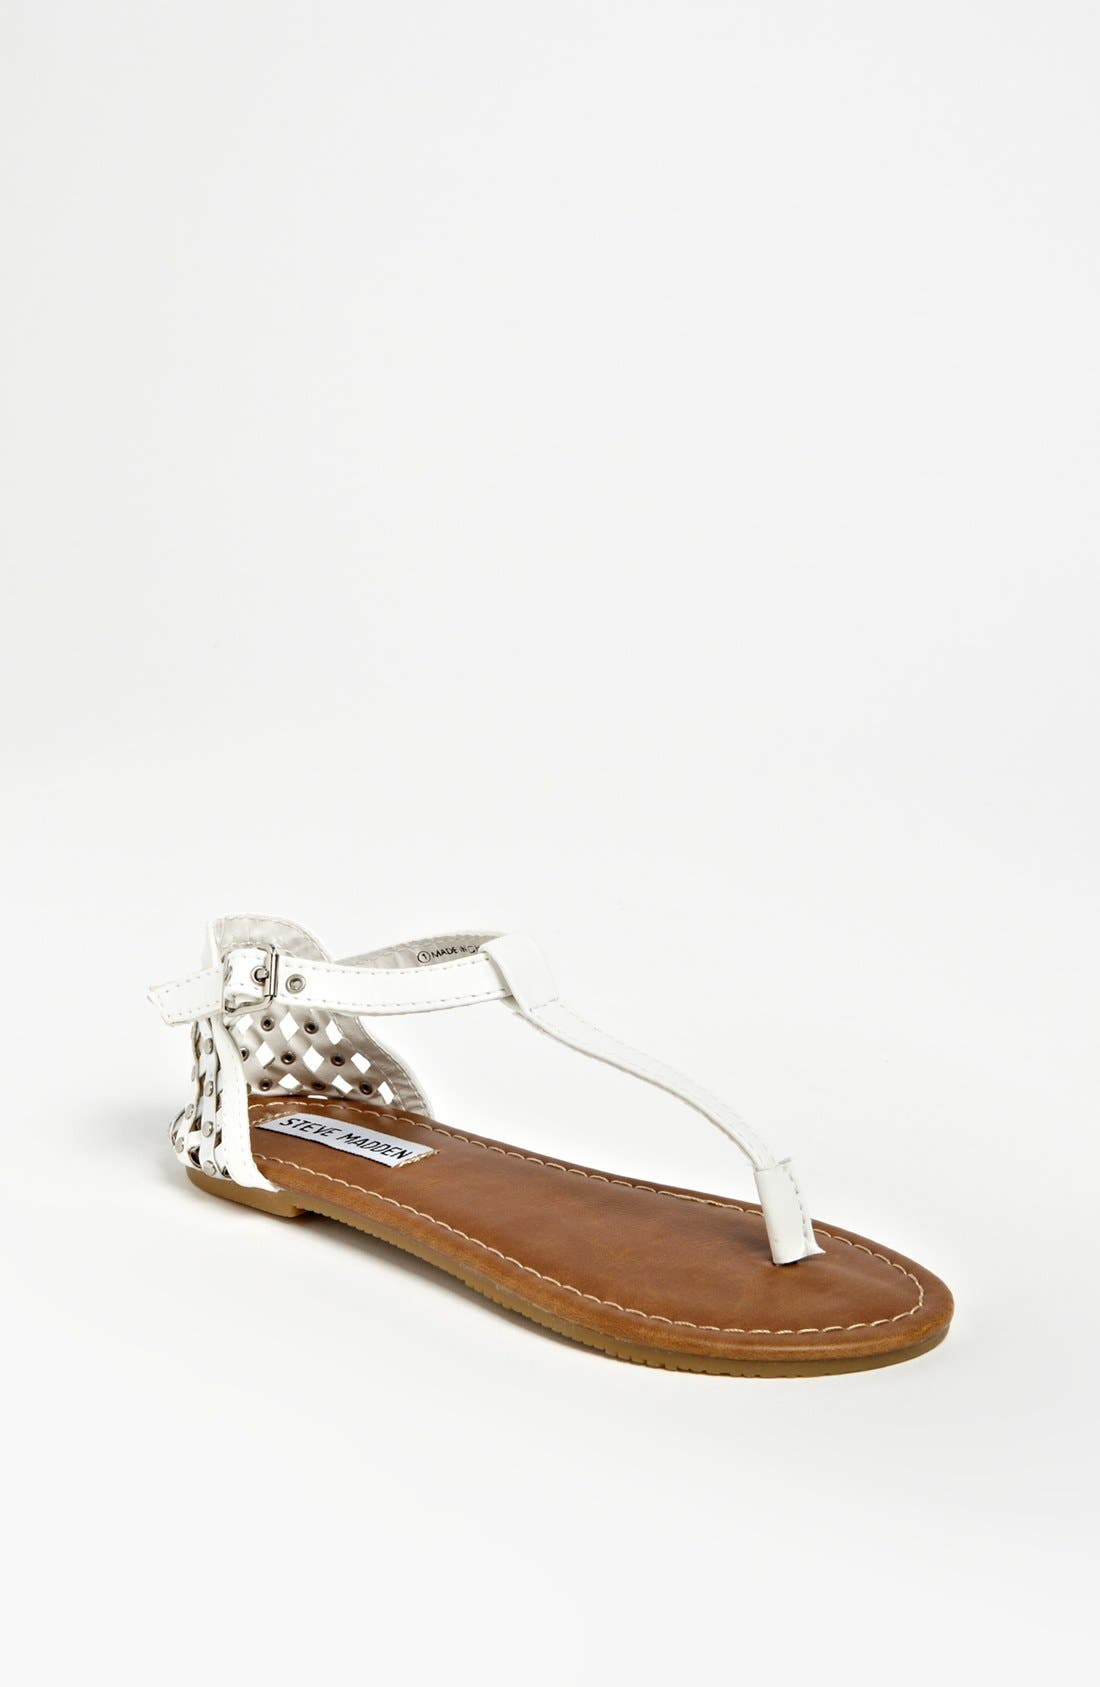 Alternate Image 1 Selected - Steve Madden 'Suttle' Sandal (Little Kid & Big Kid)